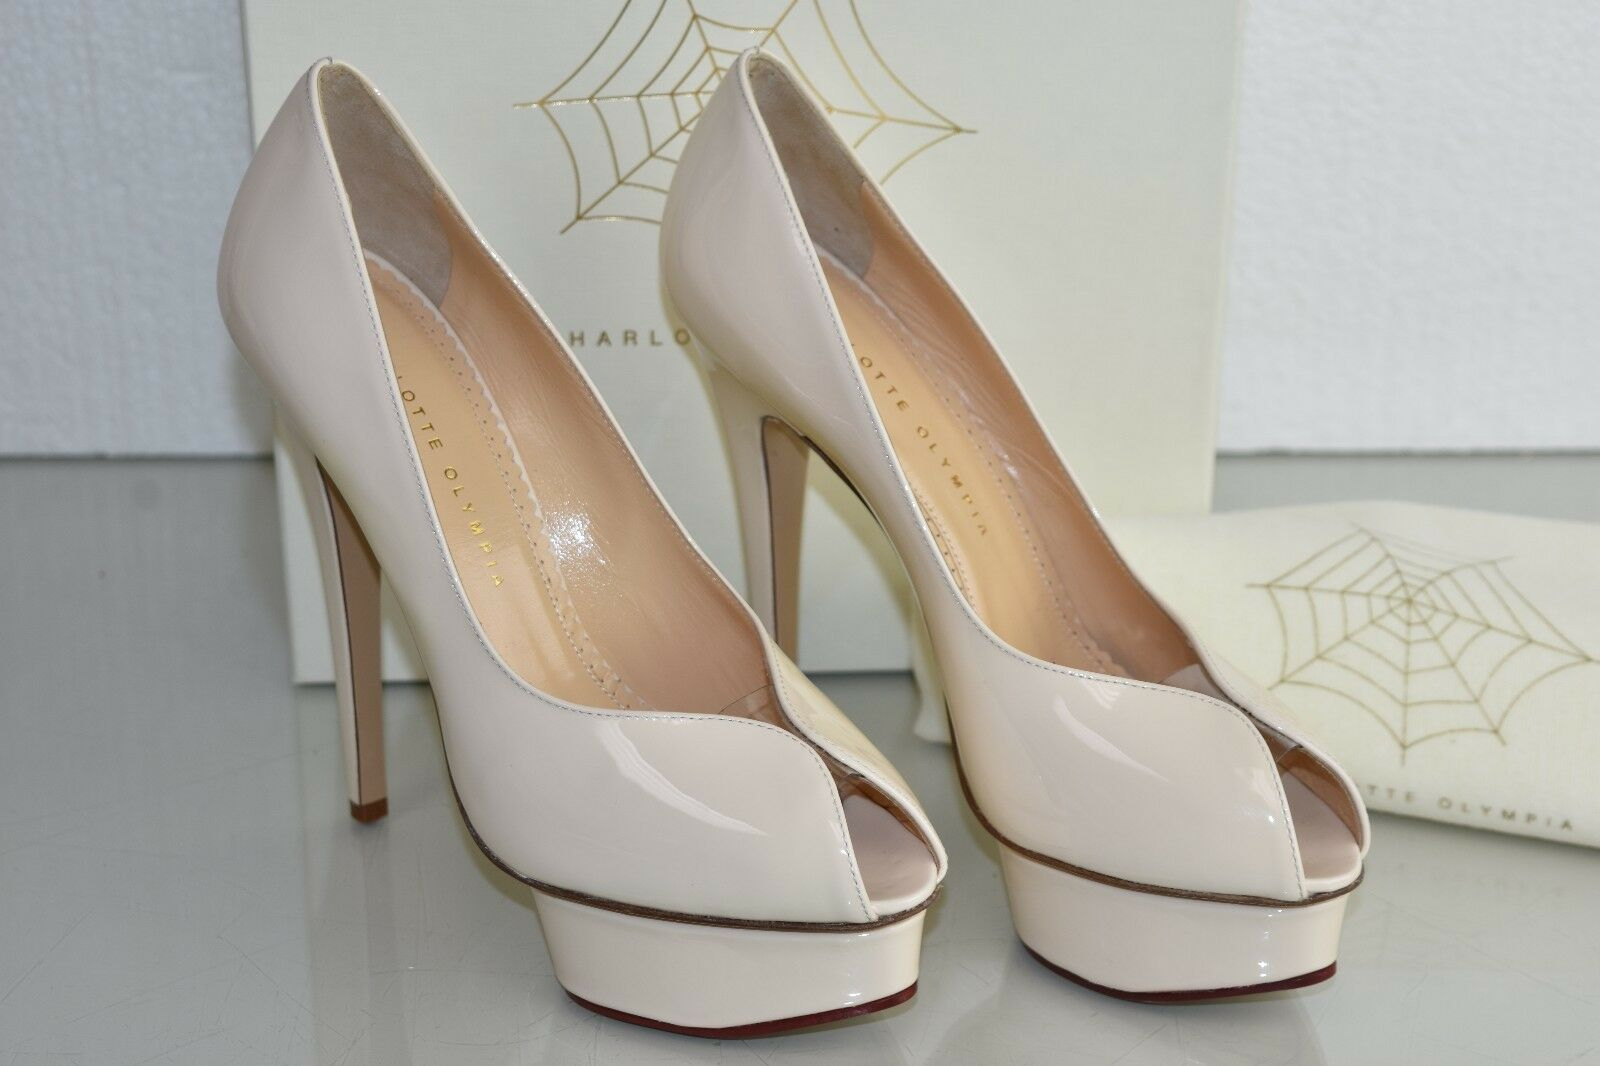 New Charlotte Olympia DAPHNE Patent Leather Platform Powder PVC shoes 39.5